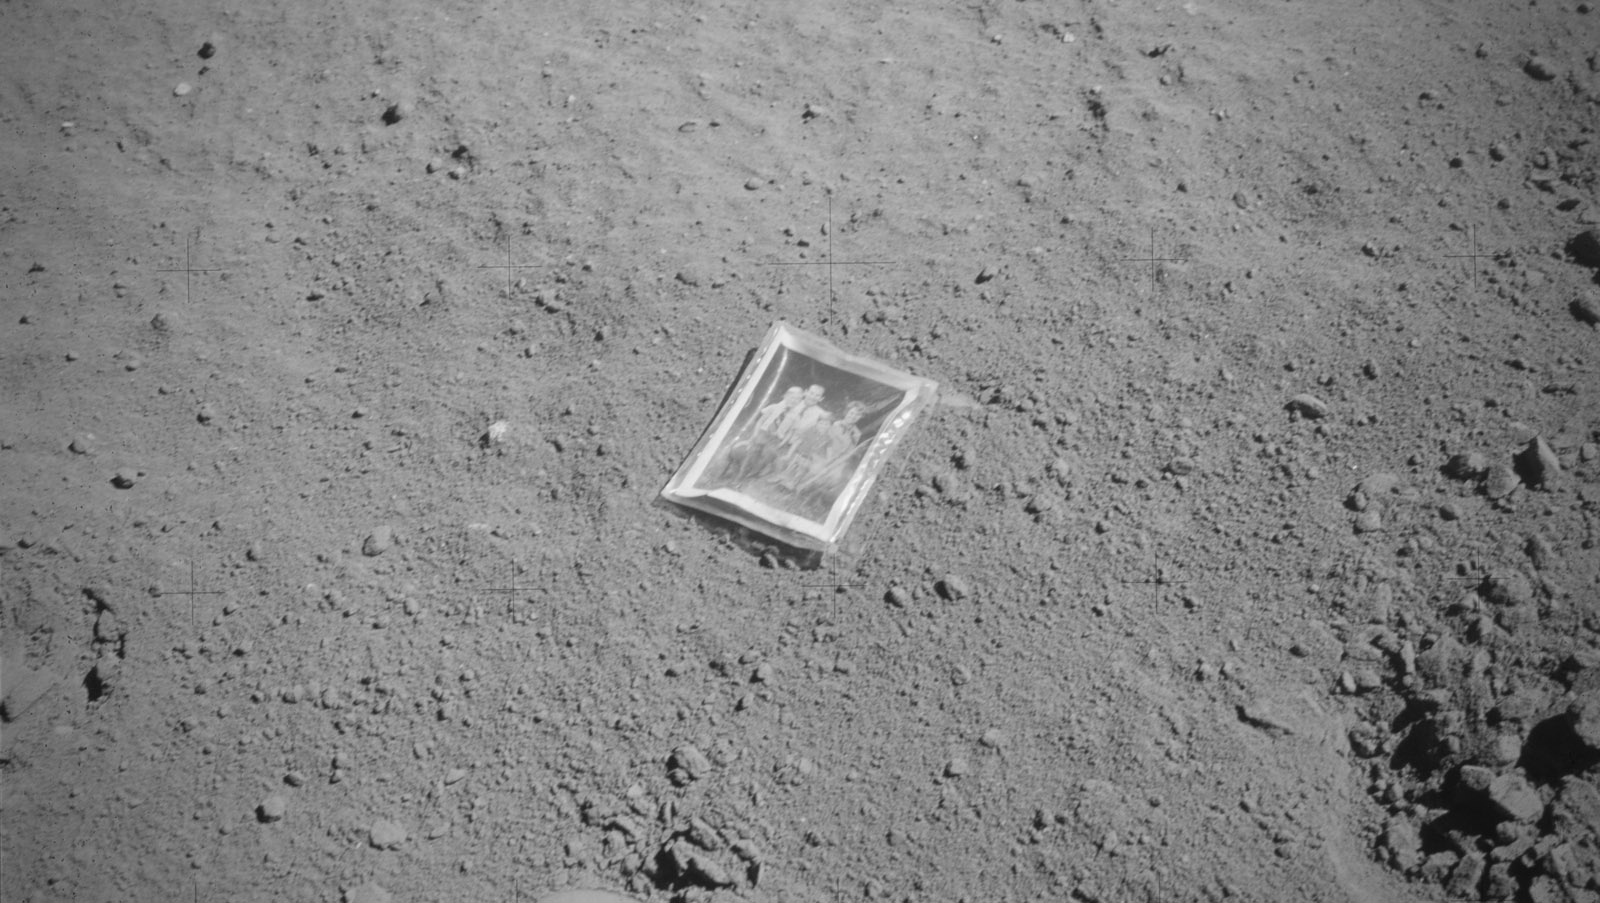 The photo left by Charlie Duke. (image courtesy NASA)